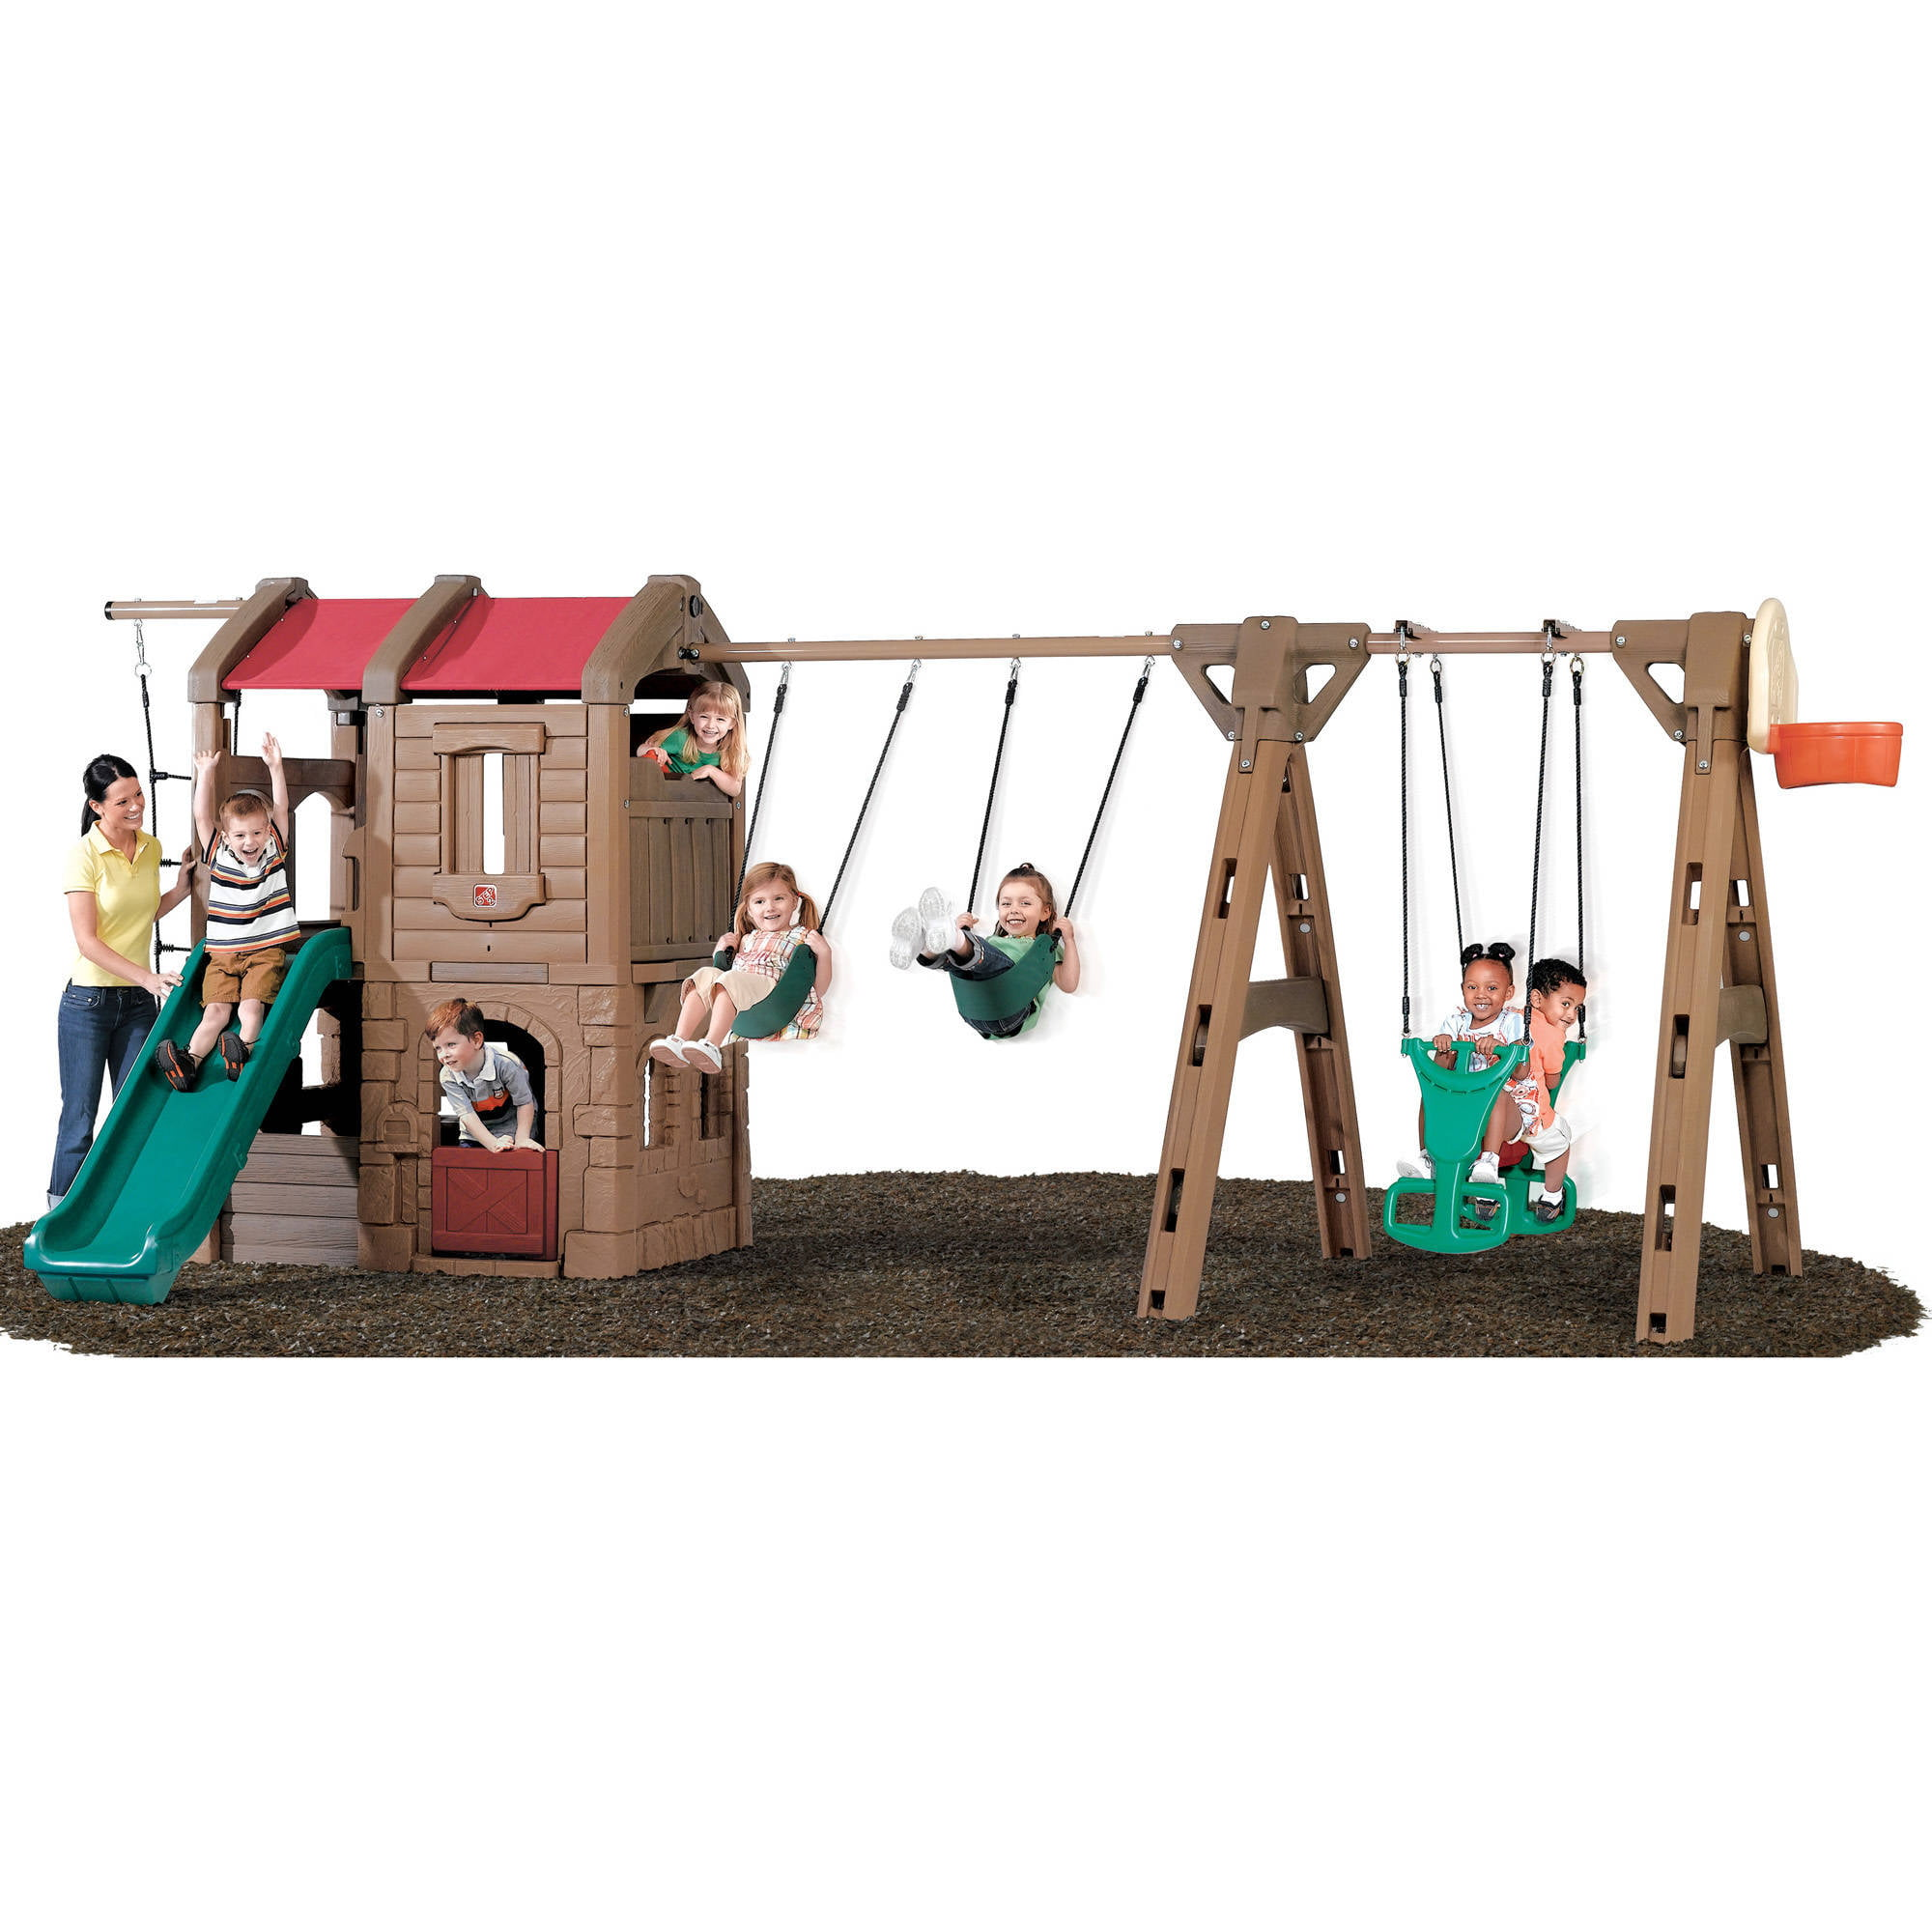 Step2 Naturally Playful Adventure Lodge Play Center Swing Set with Glider and 6' Slide by Generic